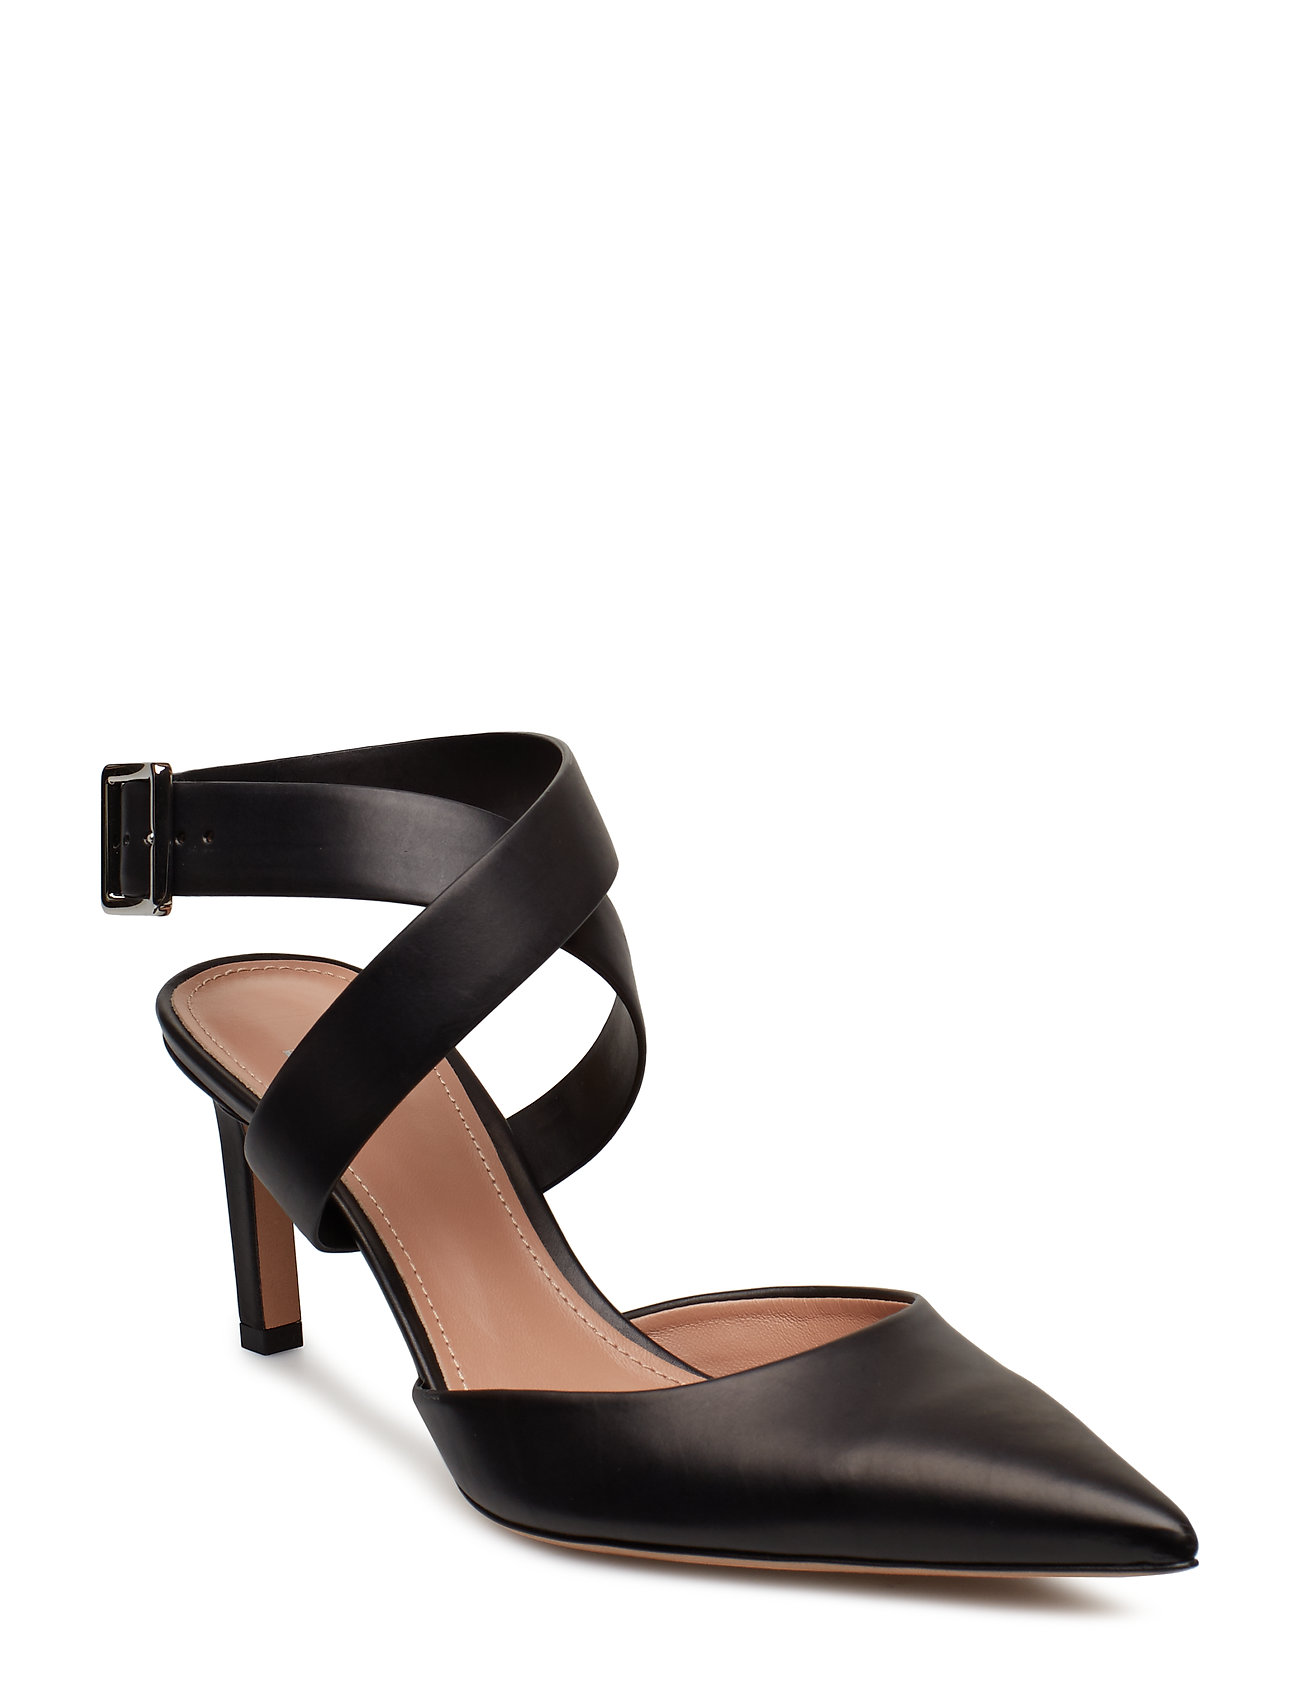 BOSS Business Wear Linda Cross Pump65-C - BLACK